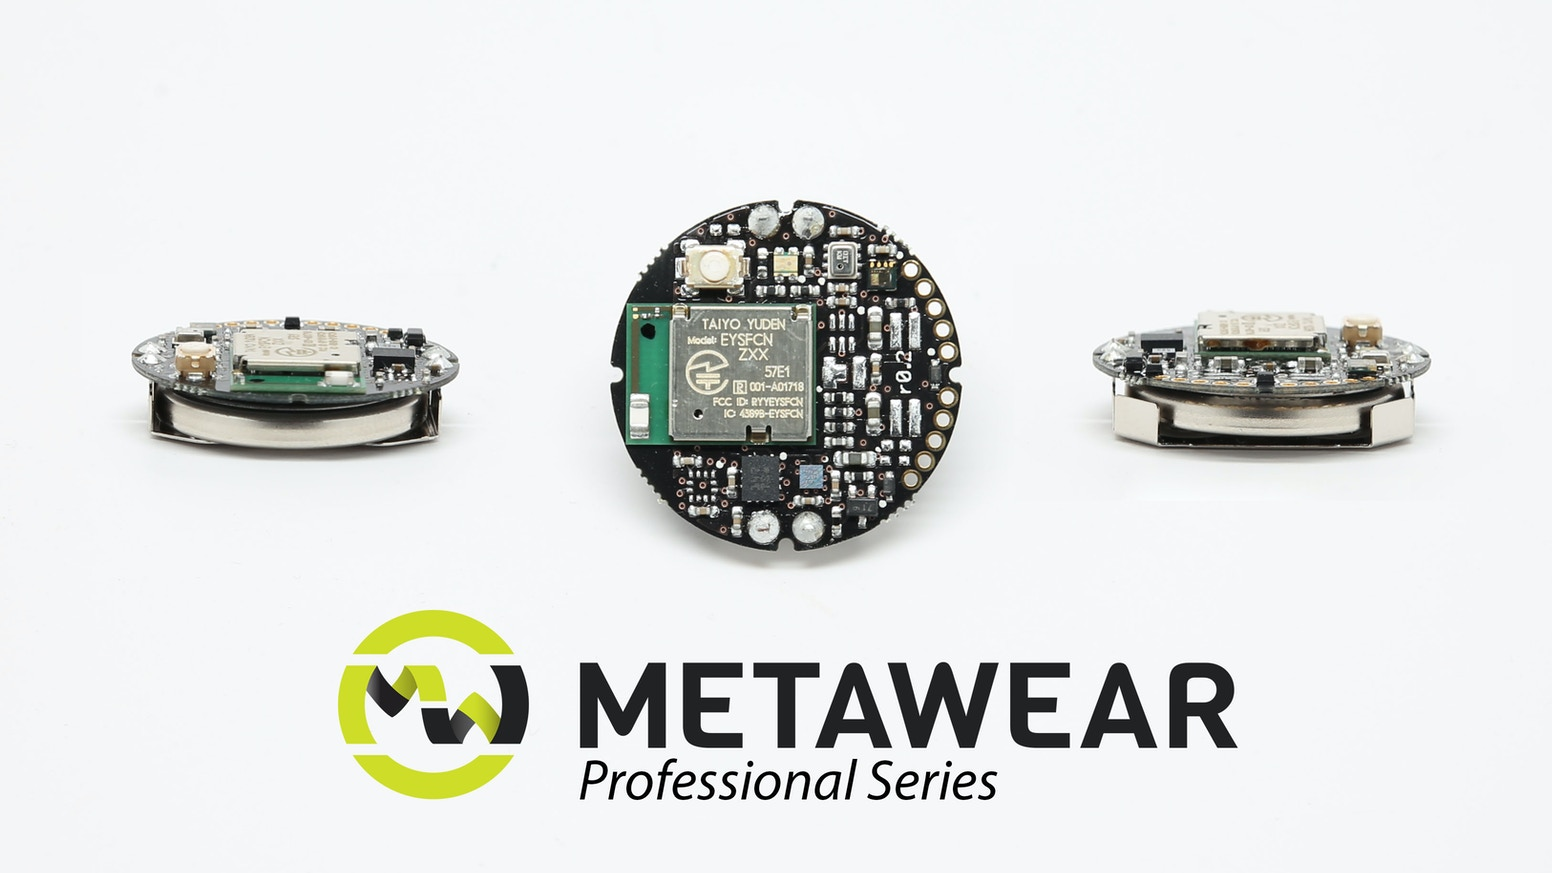 Temp, Light, and 10 axis of Motion sensing (gyro+mag+baro) for Sports, Wearables, and Education; this is the most advanced BLE SENSOR.